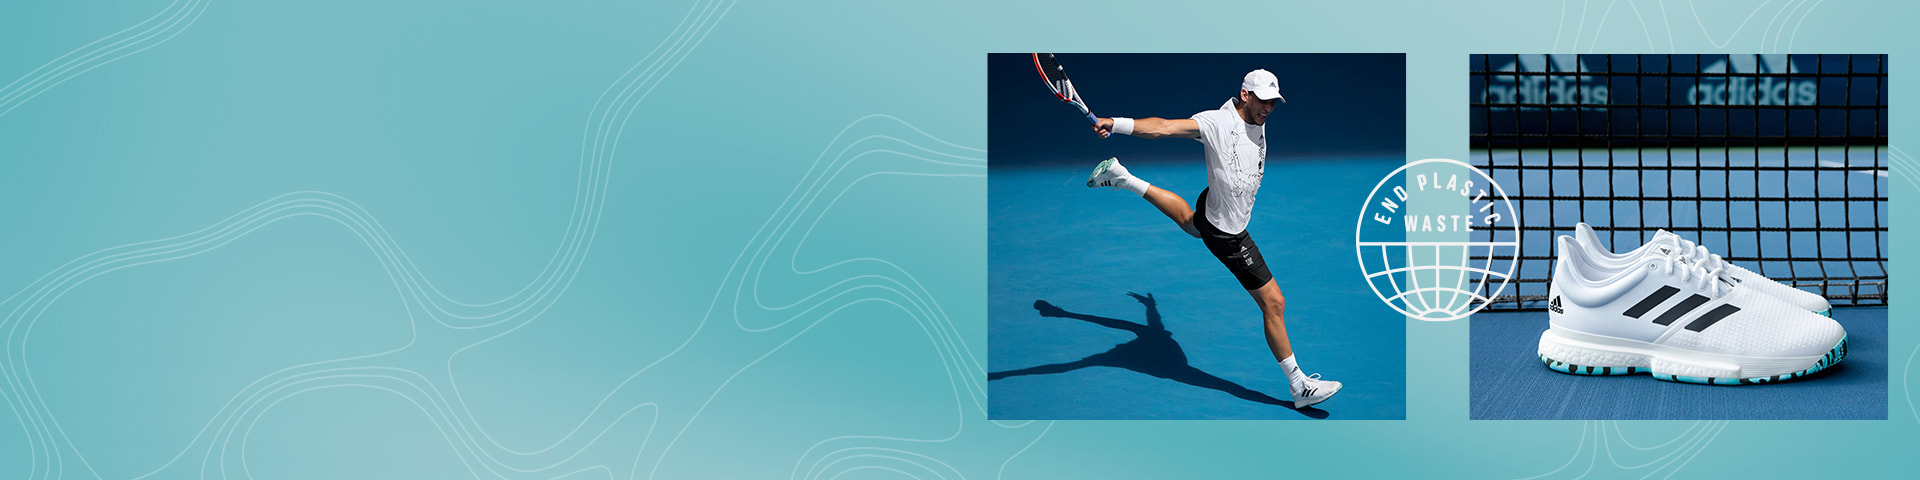 Dominic Thiem hits a backhand in the new adidas Parley tennis range including the Parley Solecourt shoes